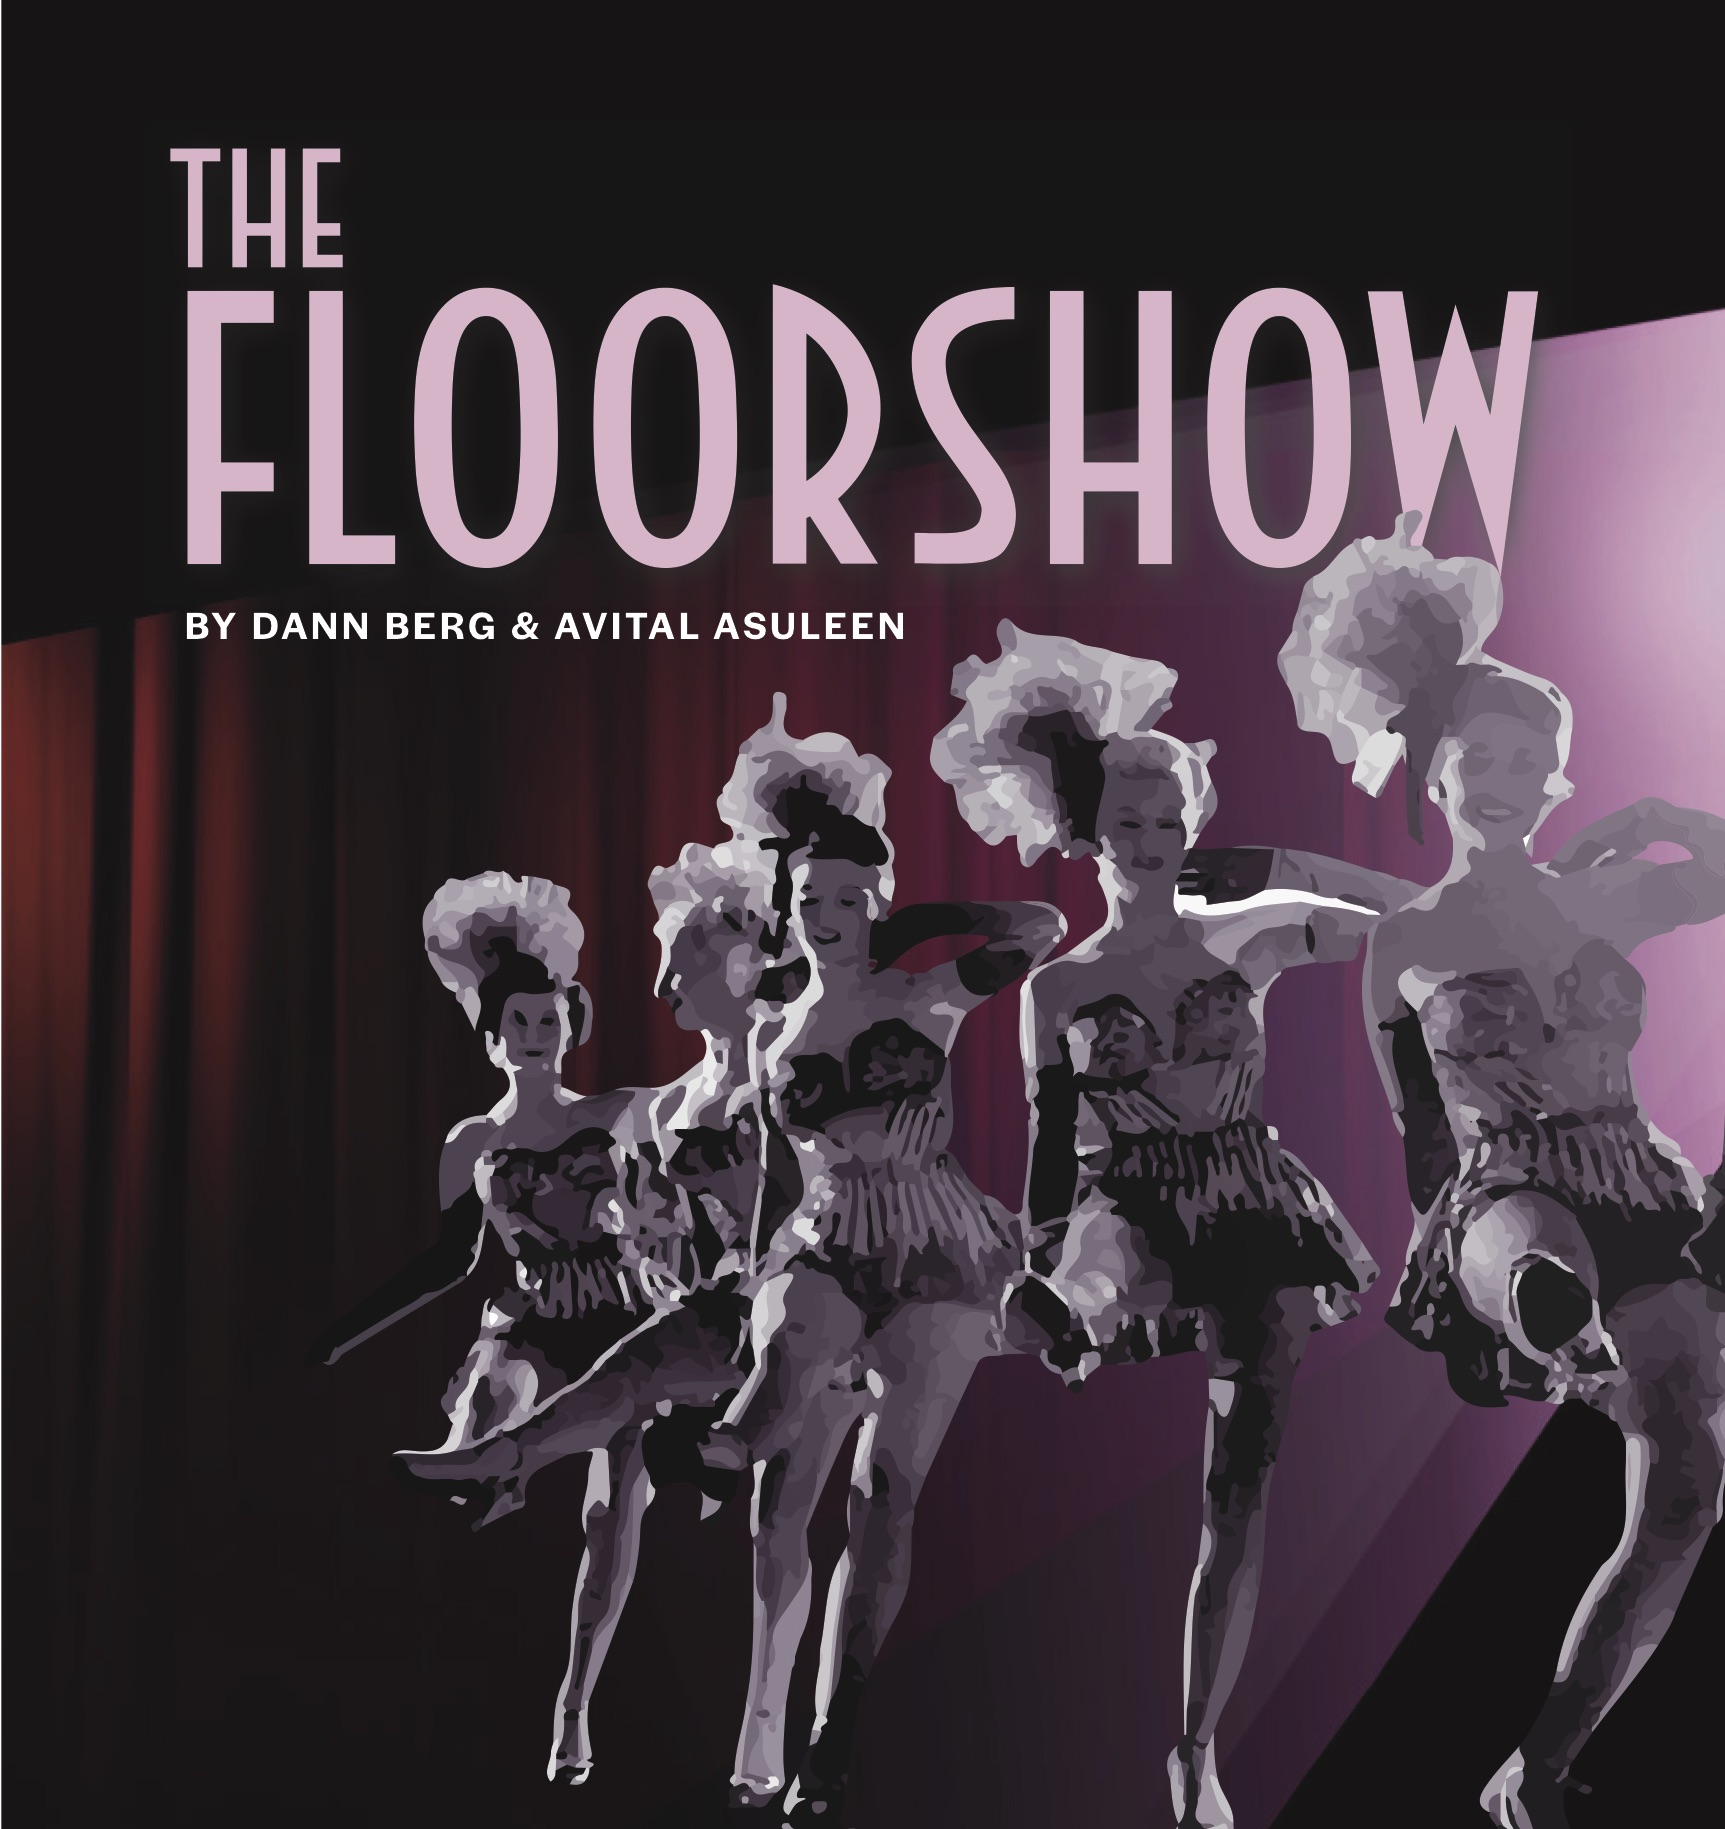 The Floorshow Poster